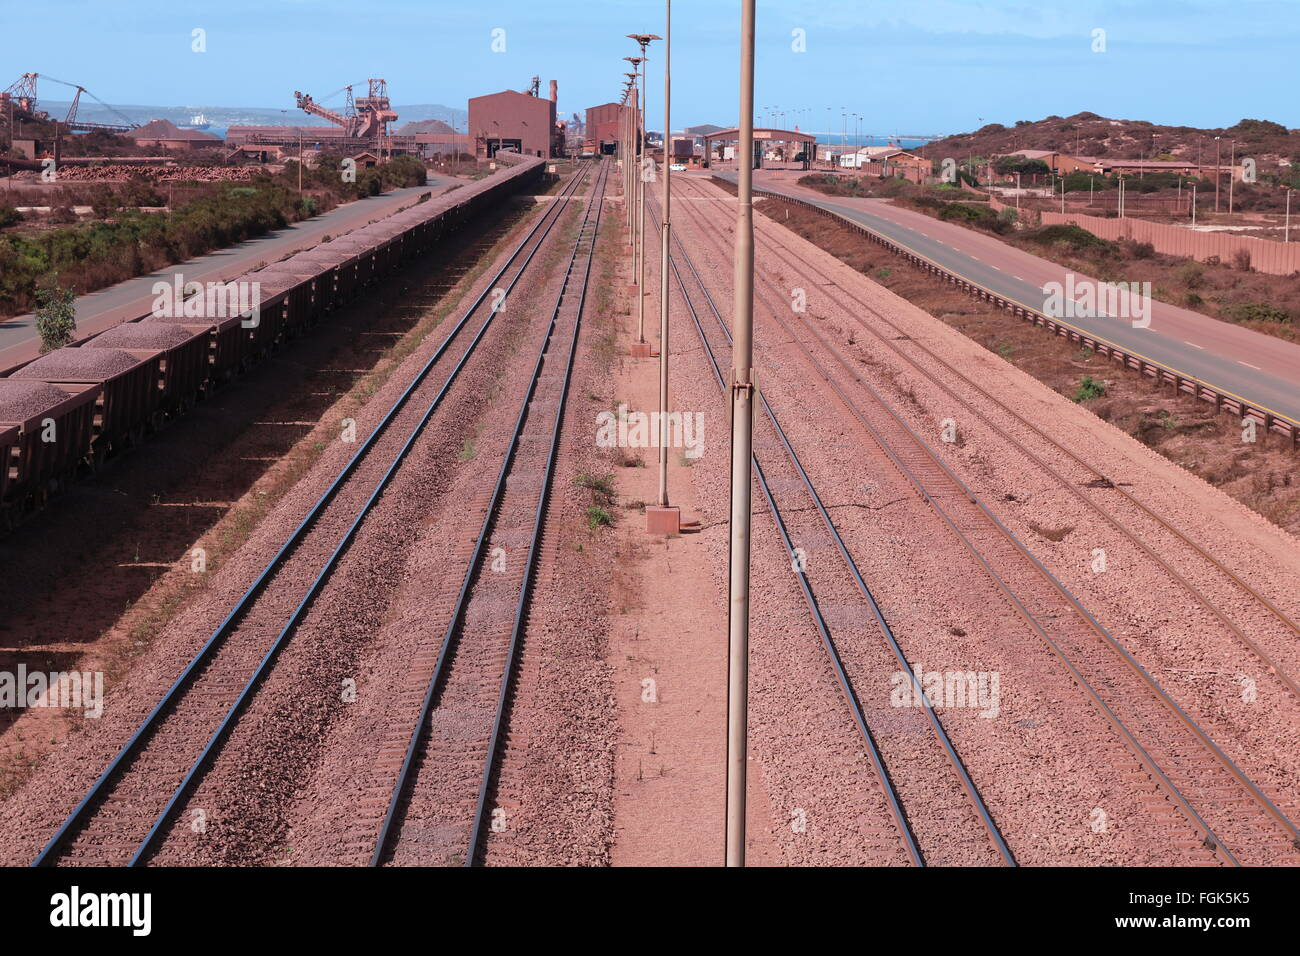 Railway lines at iron ore terminal, Saldanha Bay, Western Cape, South Africa - Stock Image